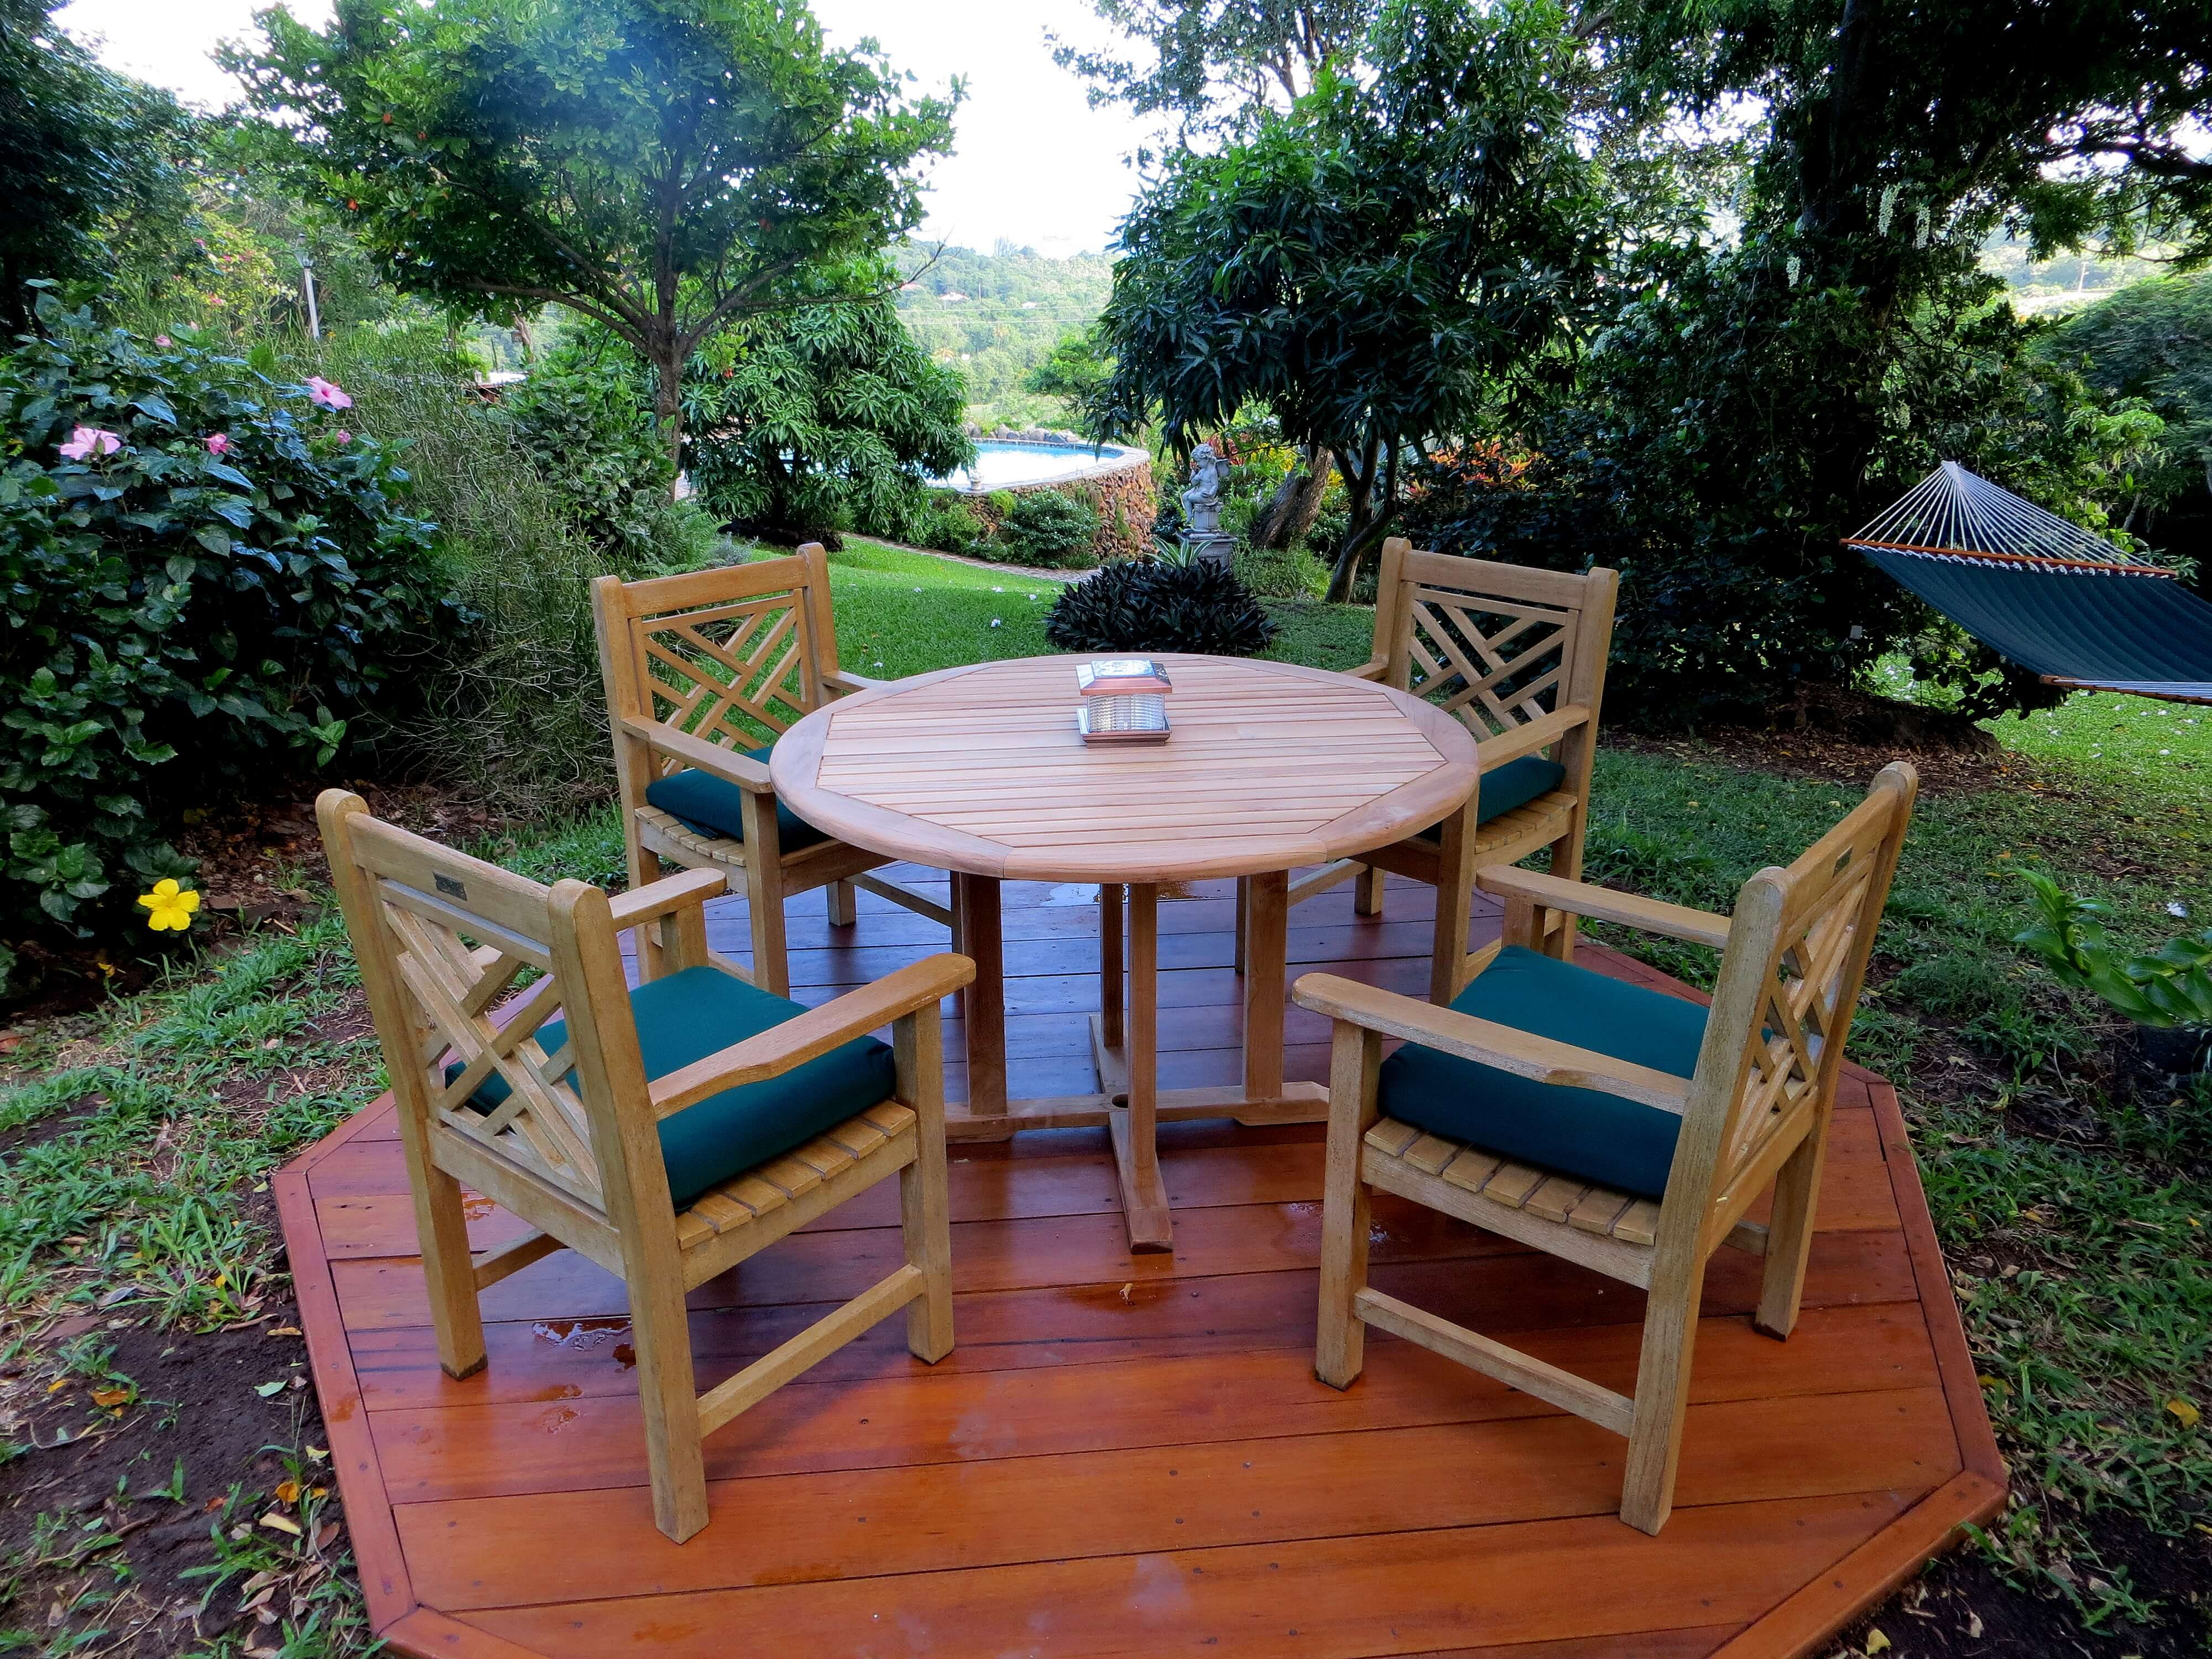 Goldenteak Customer s showing Teak Benches Teak Deep Seating